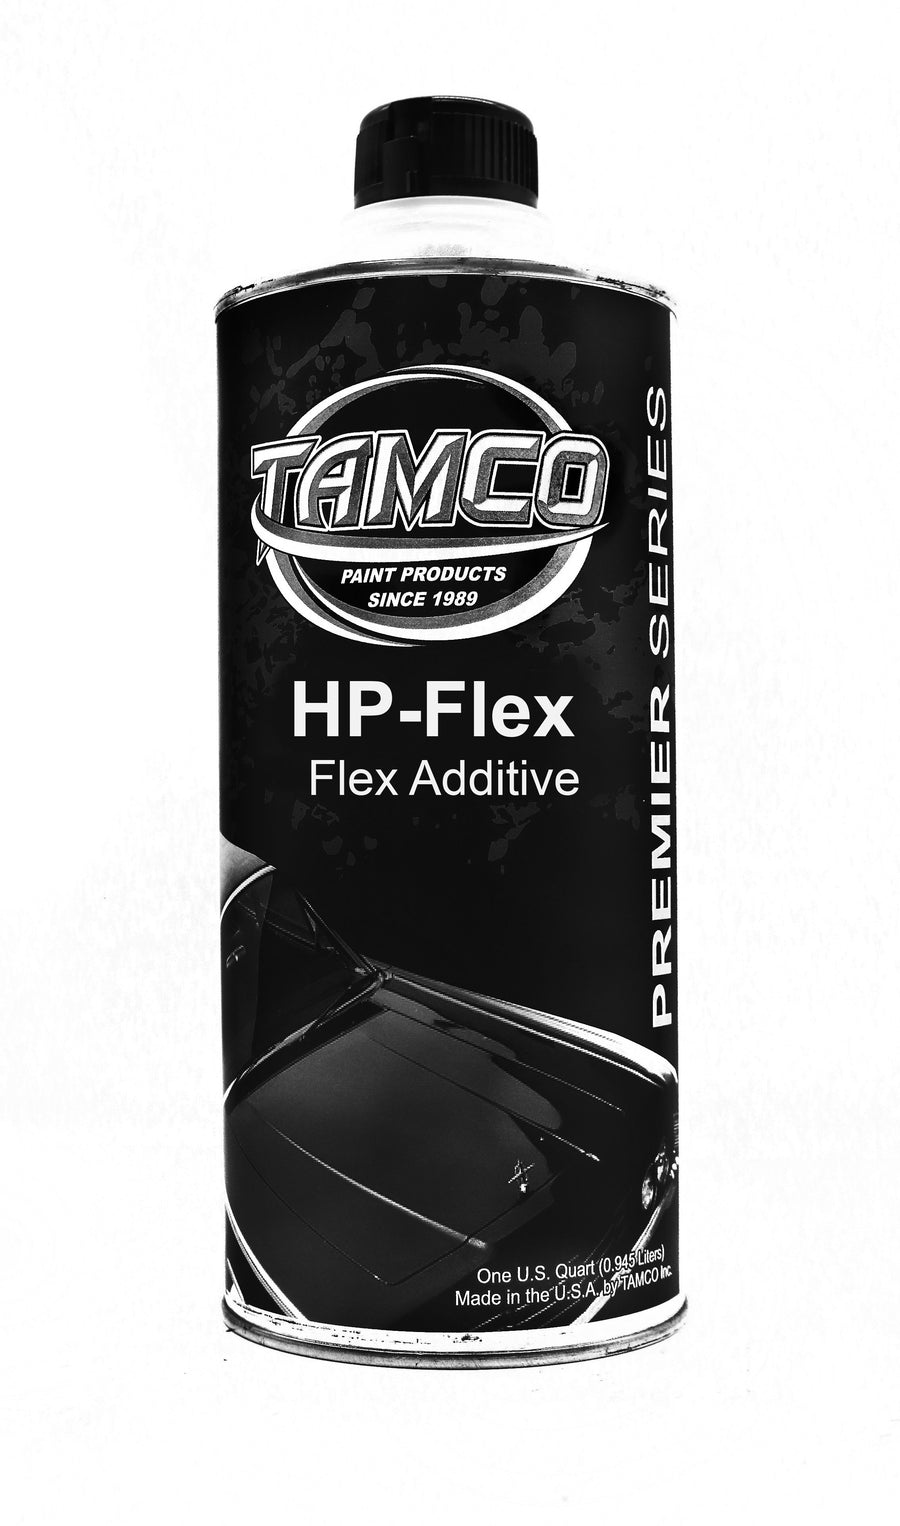 HP-Flex Additive